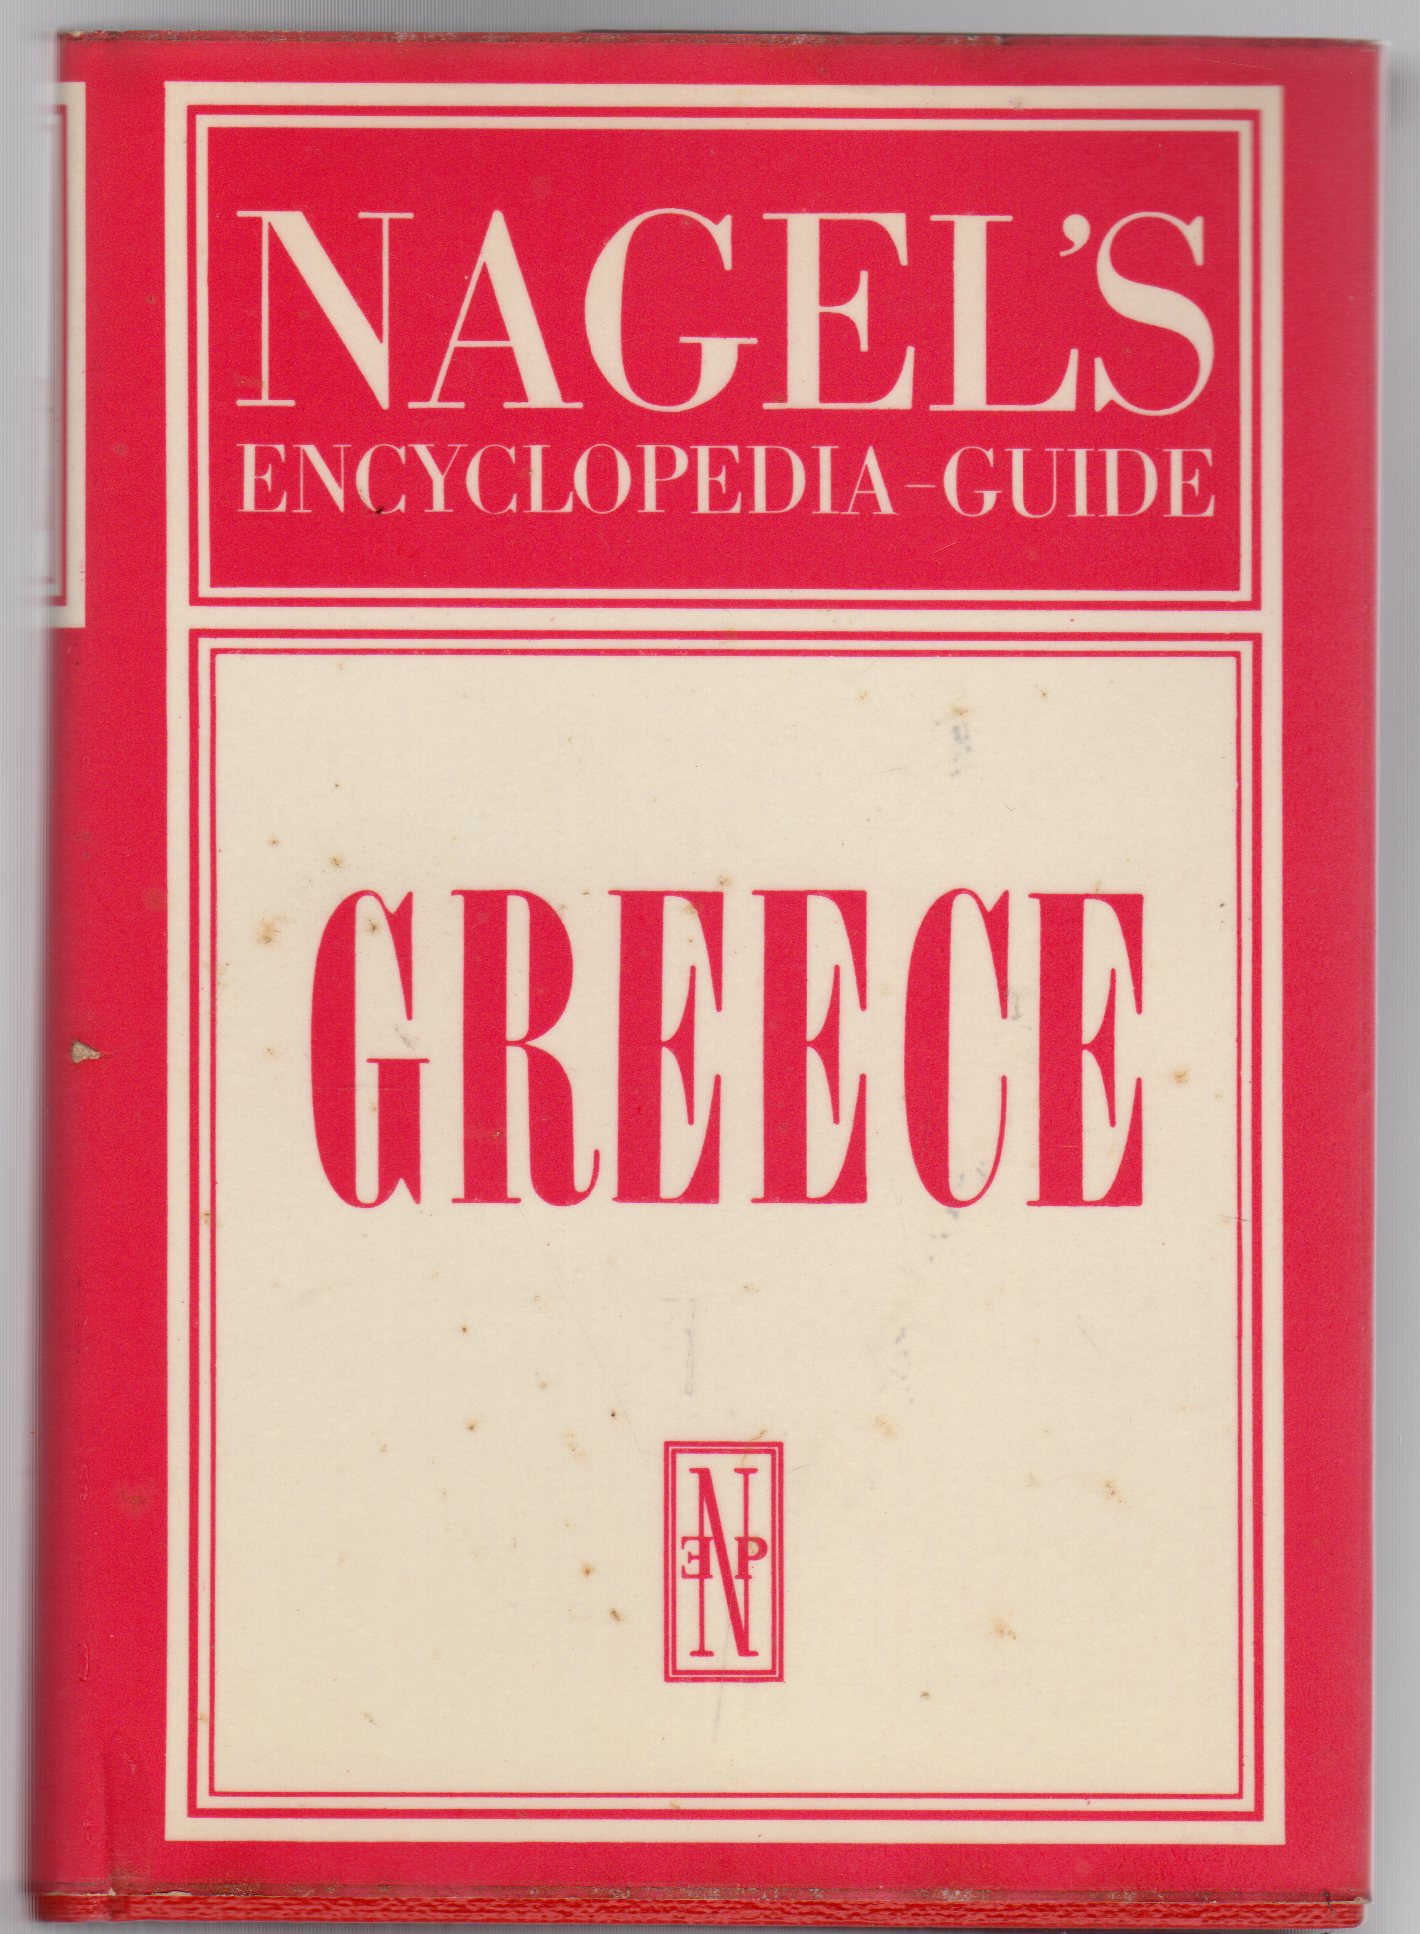 Image for Nagel's Encyclopedia Guide : Greece